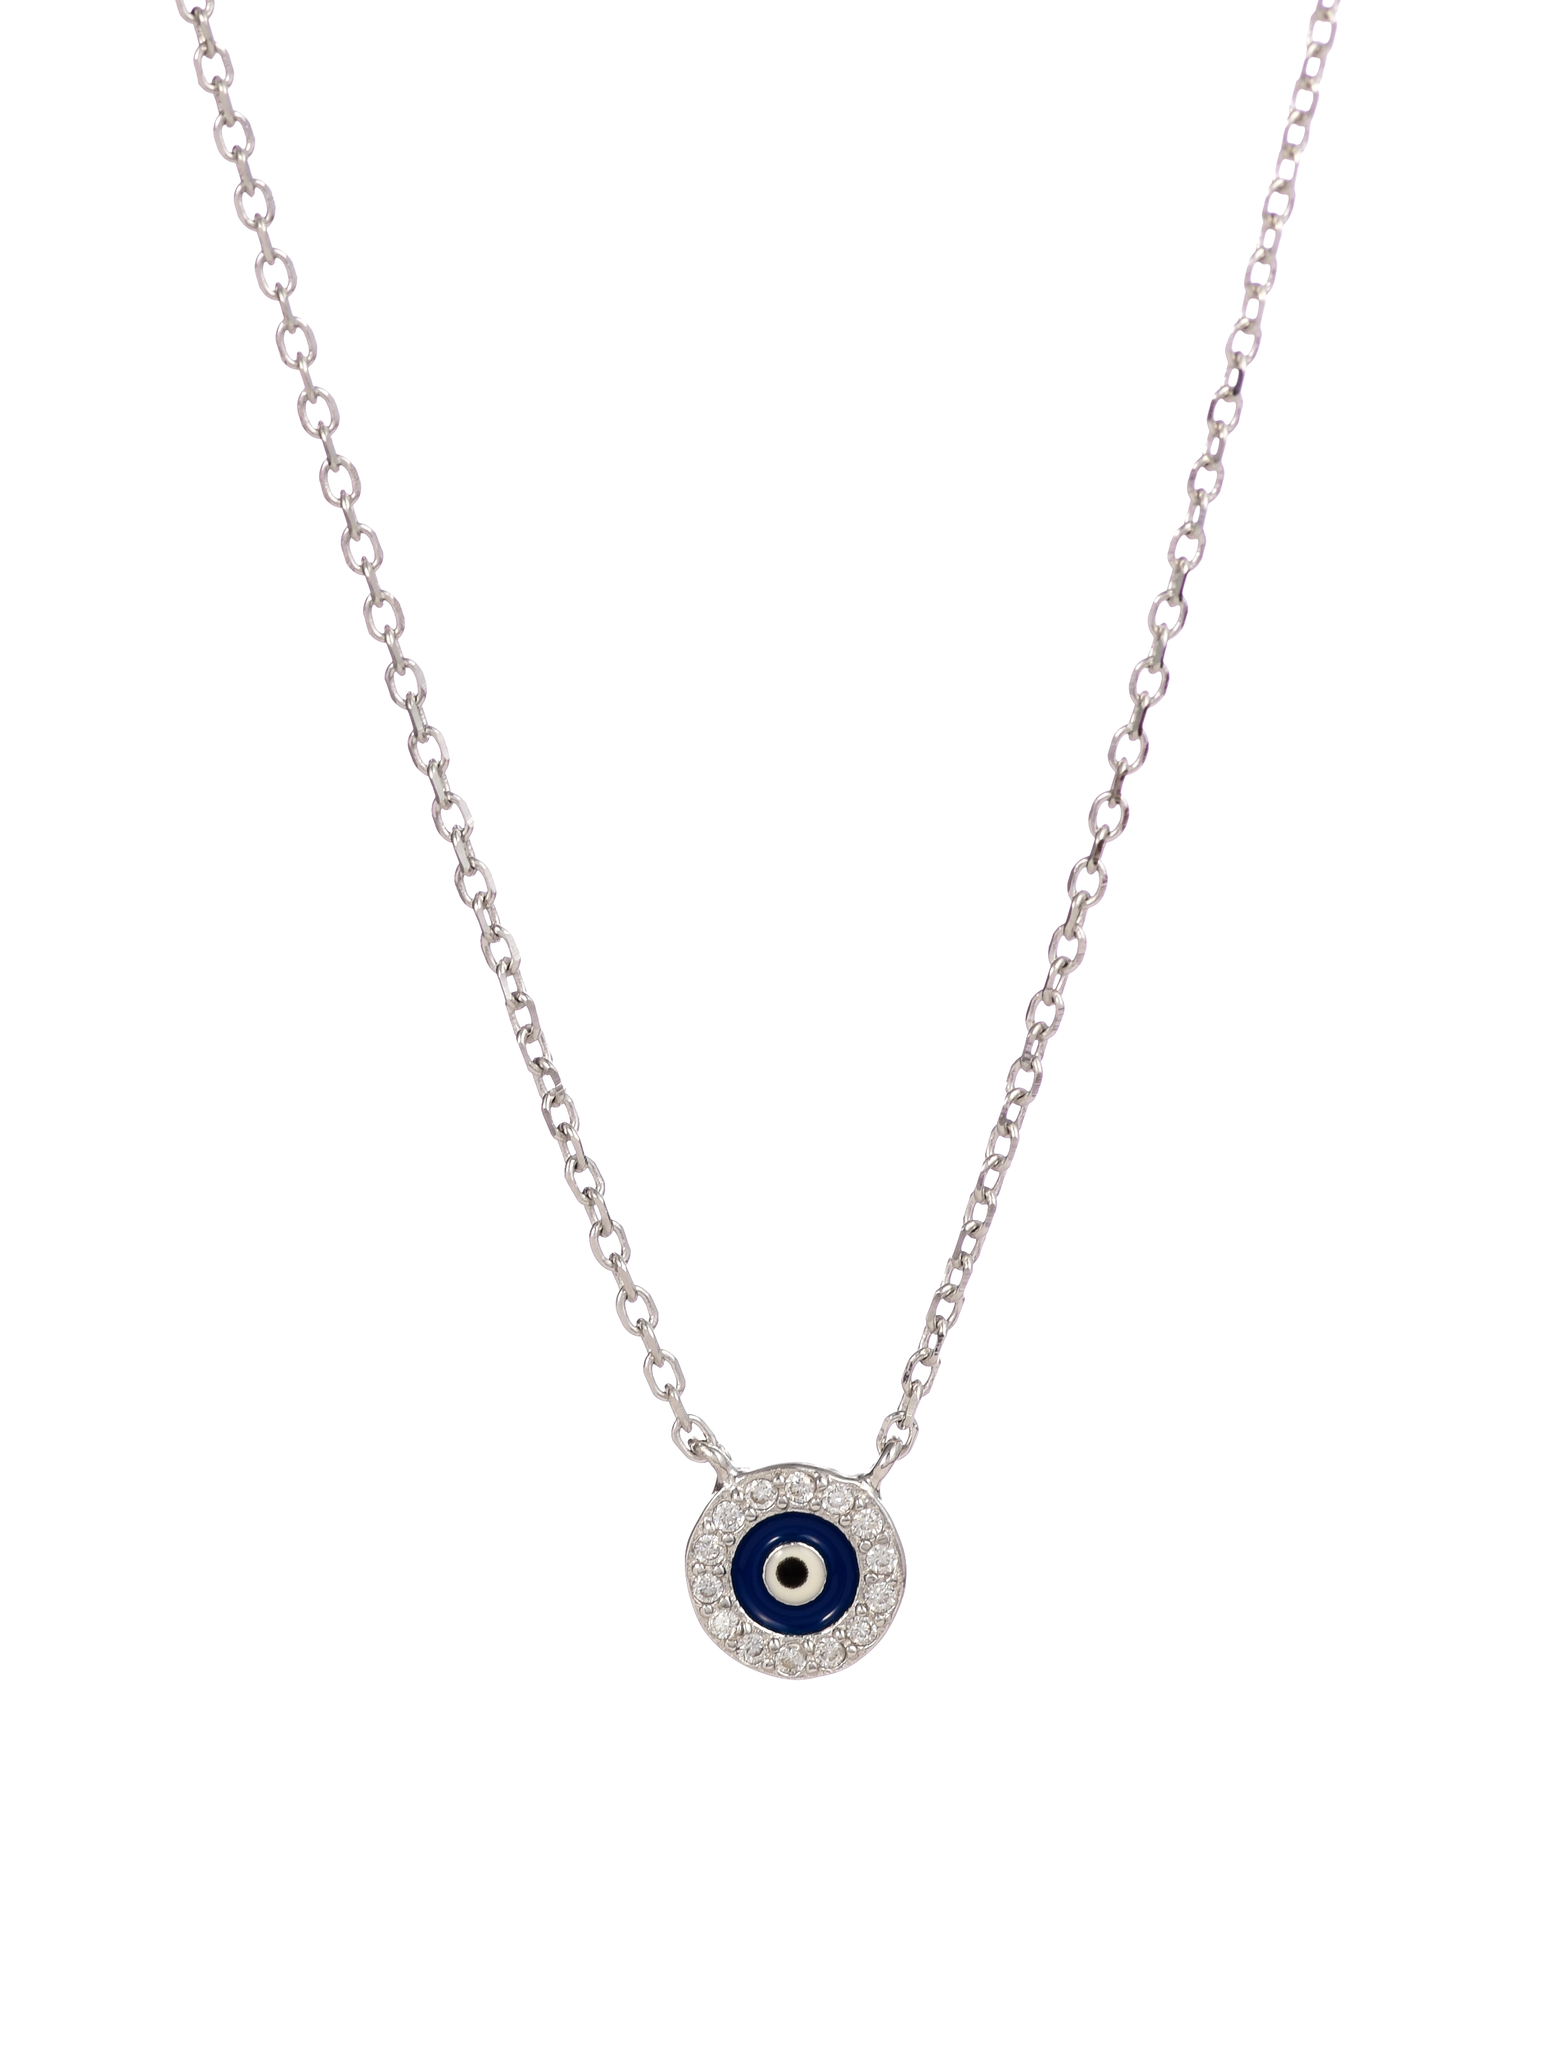 Buy sterling silver with cz stones evil eye protection necklace at sterling silver with cz stones evil eye protection necklace anny gabriella ny aloadofball Image collections